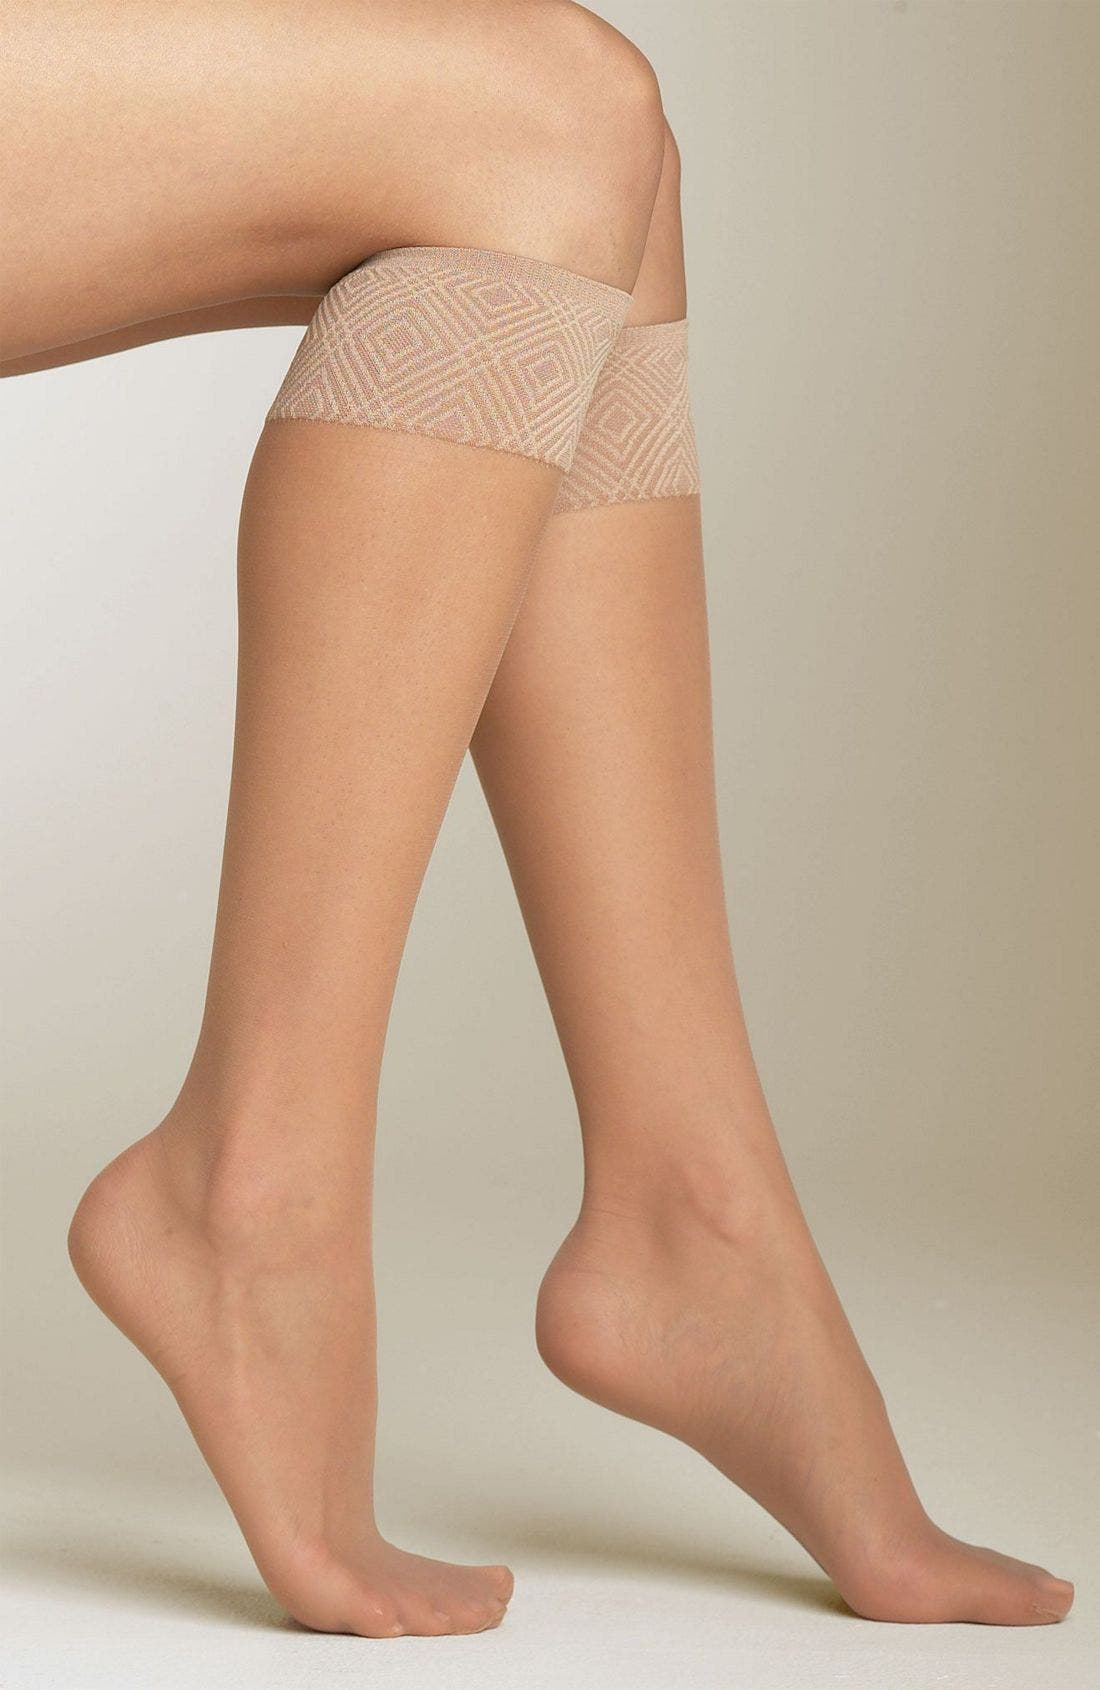 Main Image - SPANX® Sheer Knee Highs (2 Pack)